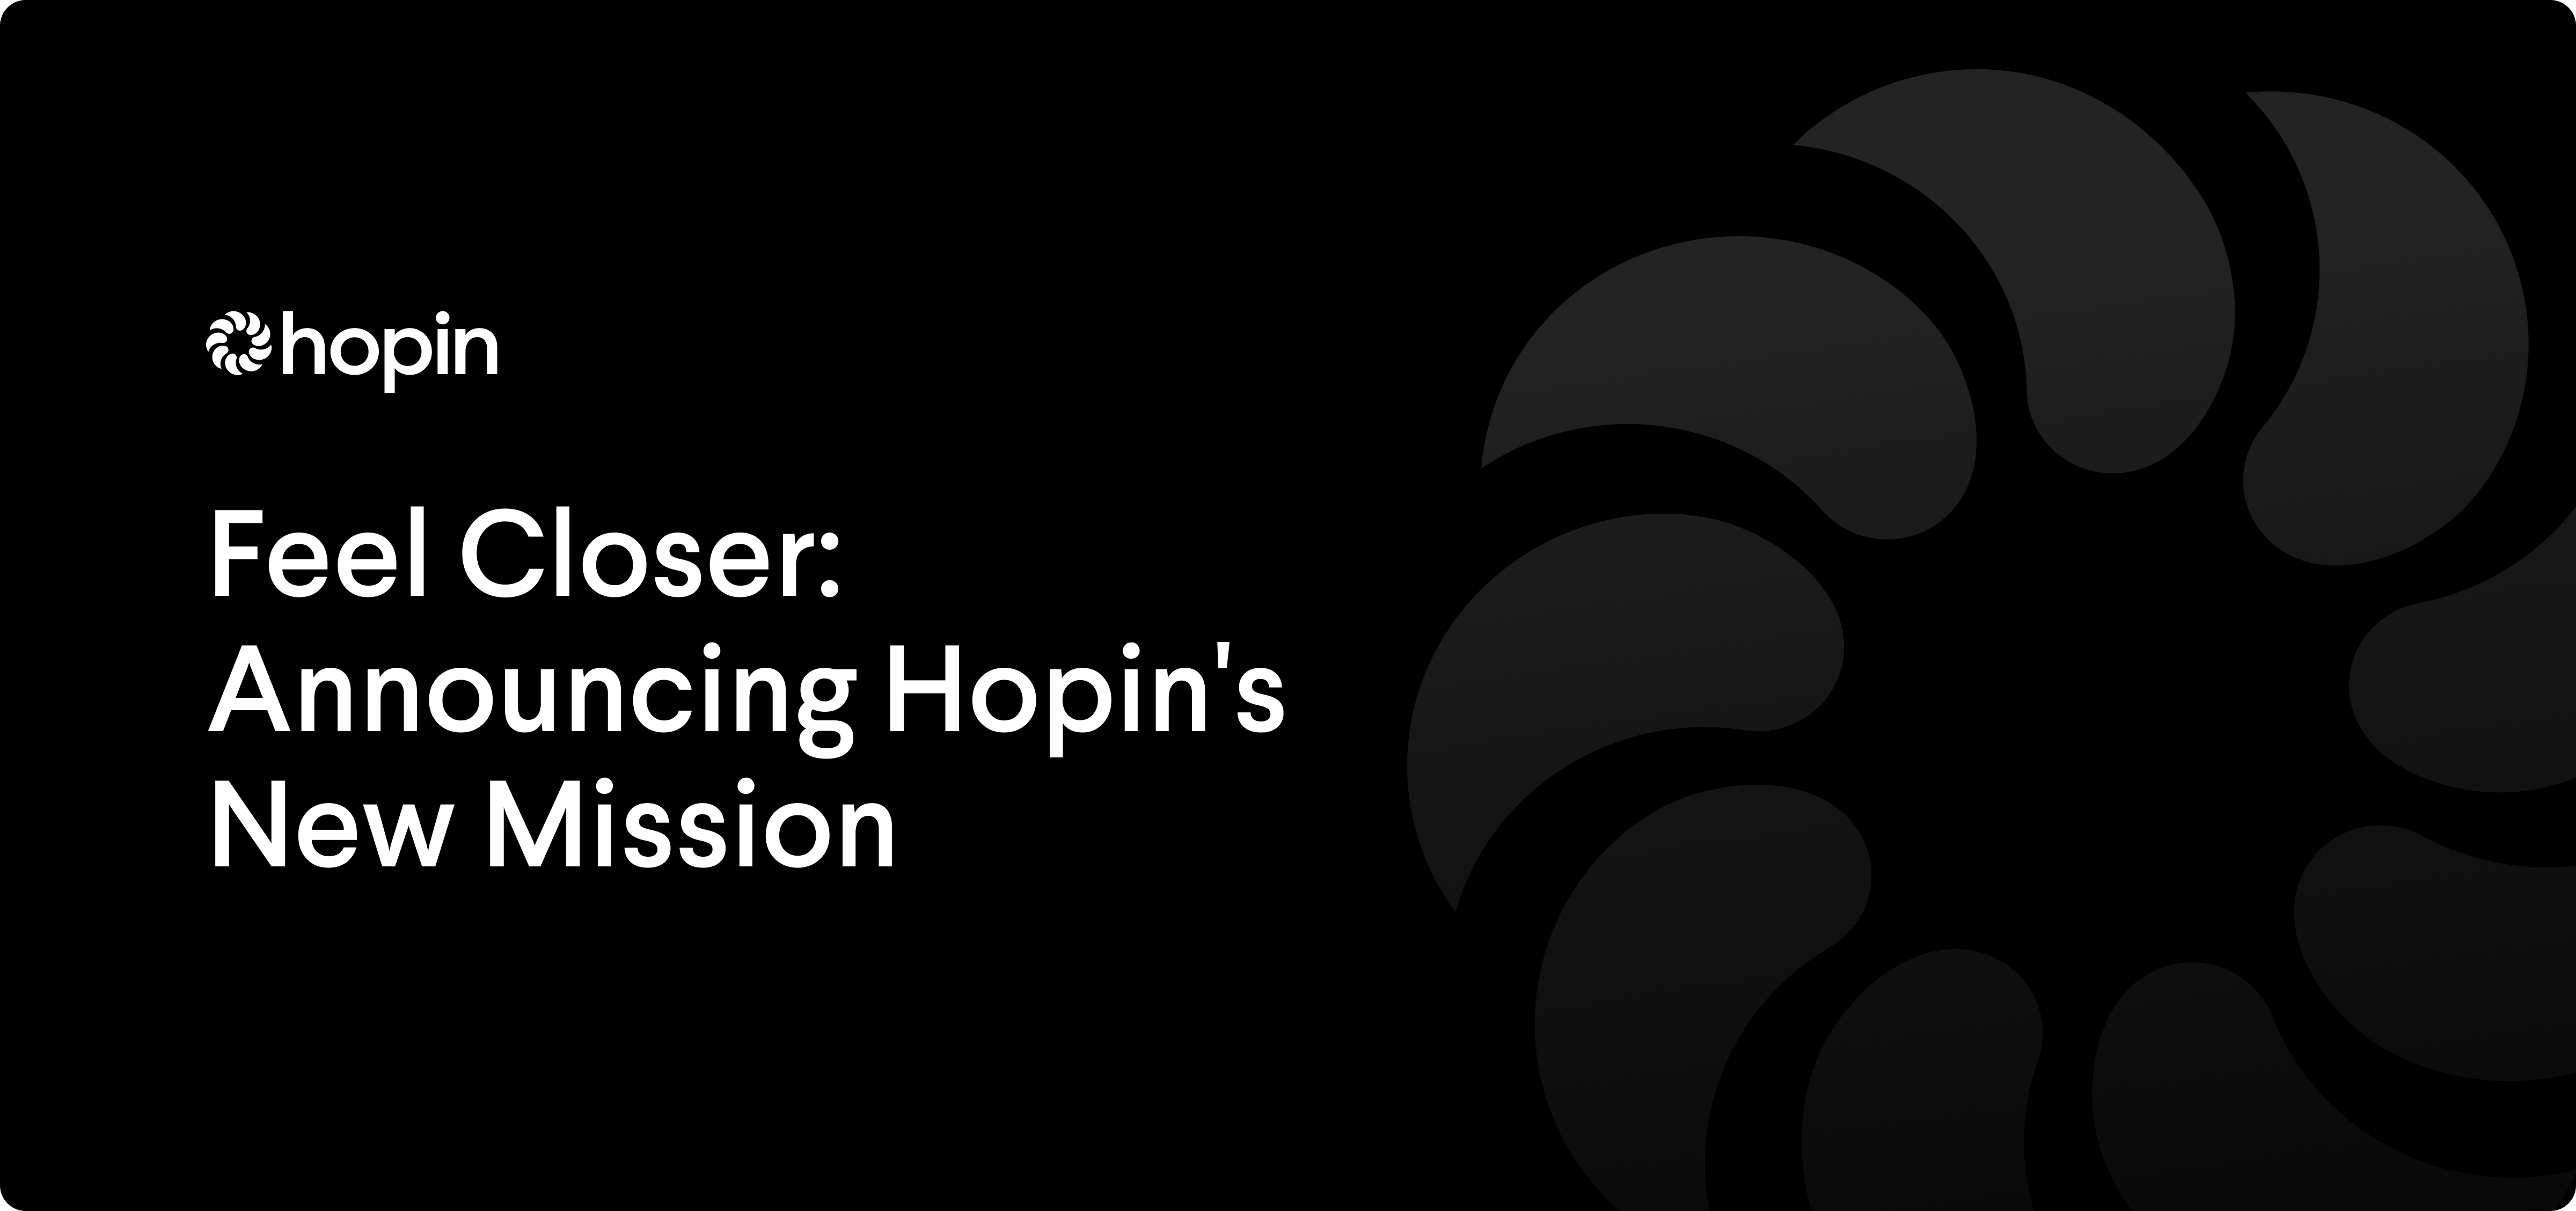 Hopin's mission is to make the world feel closer. Founder Johnny Boufarhat explains why closeness matters and how Hopin reduces barriers to closeness through our innovative products and social impact commitments.